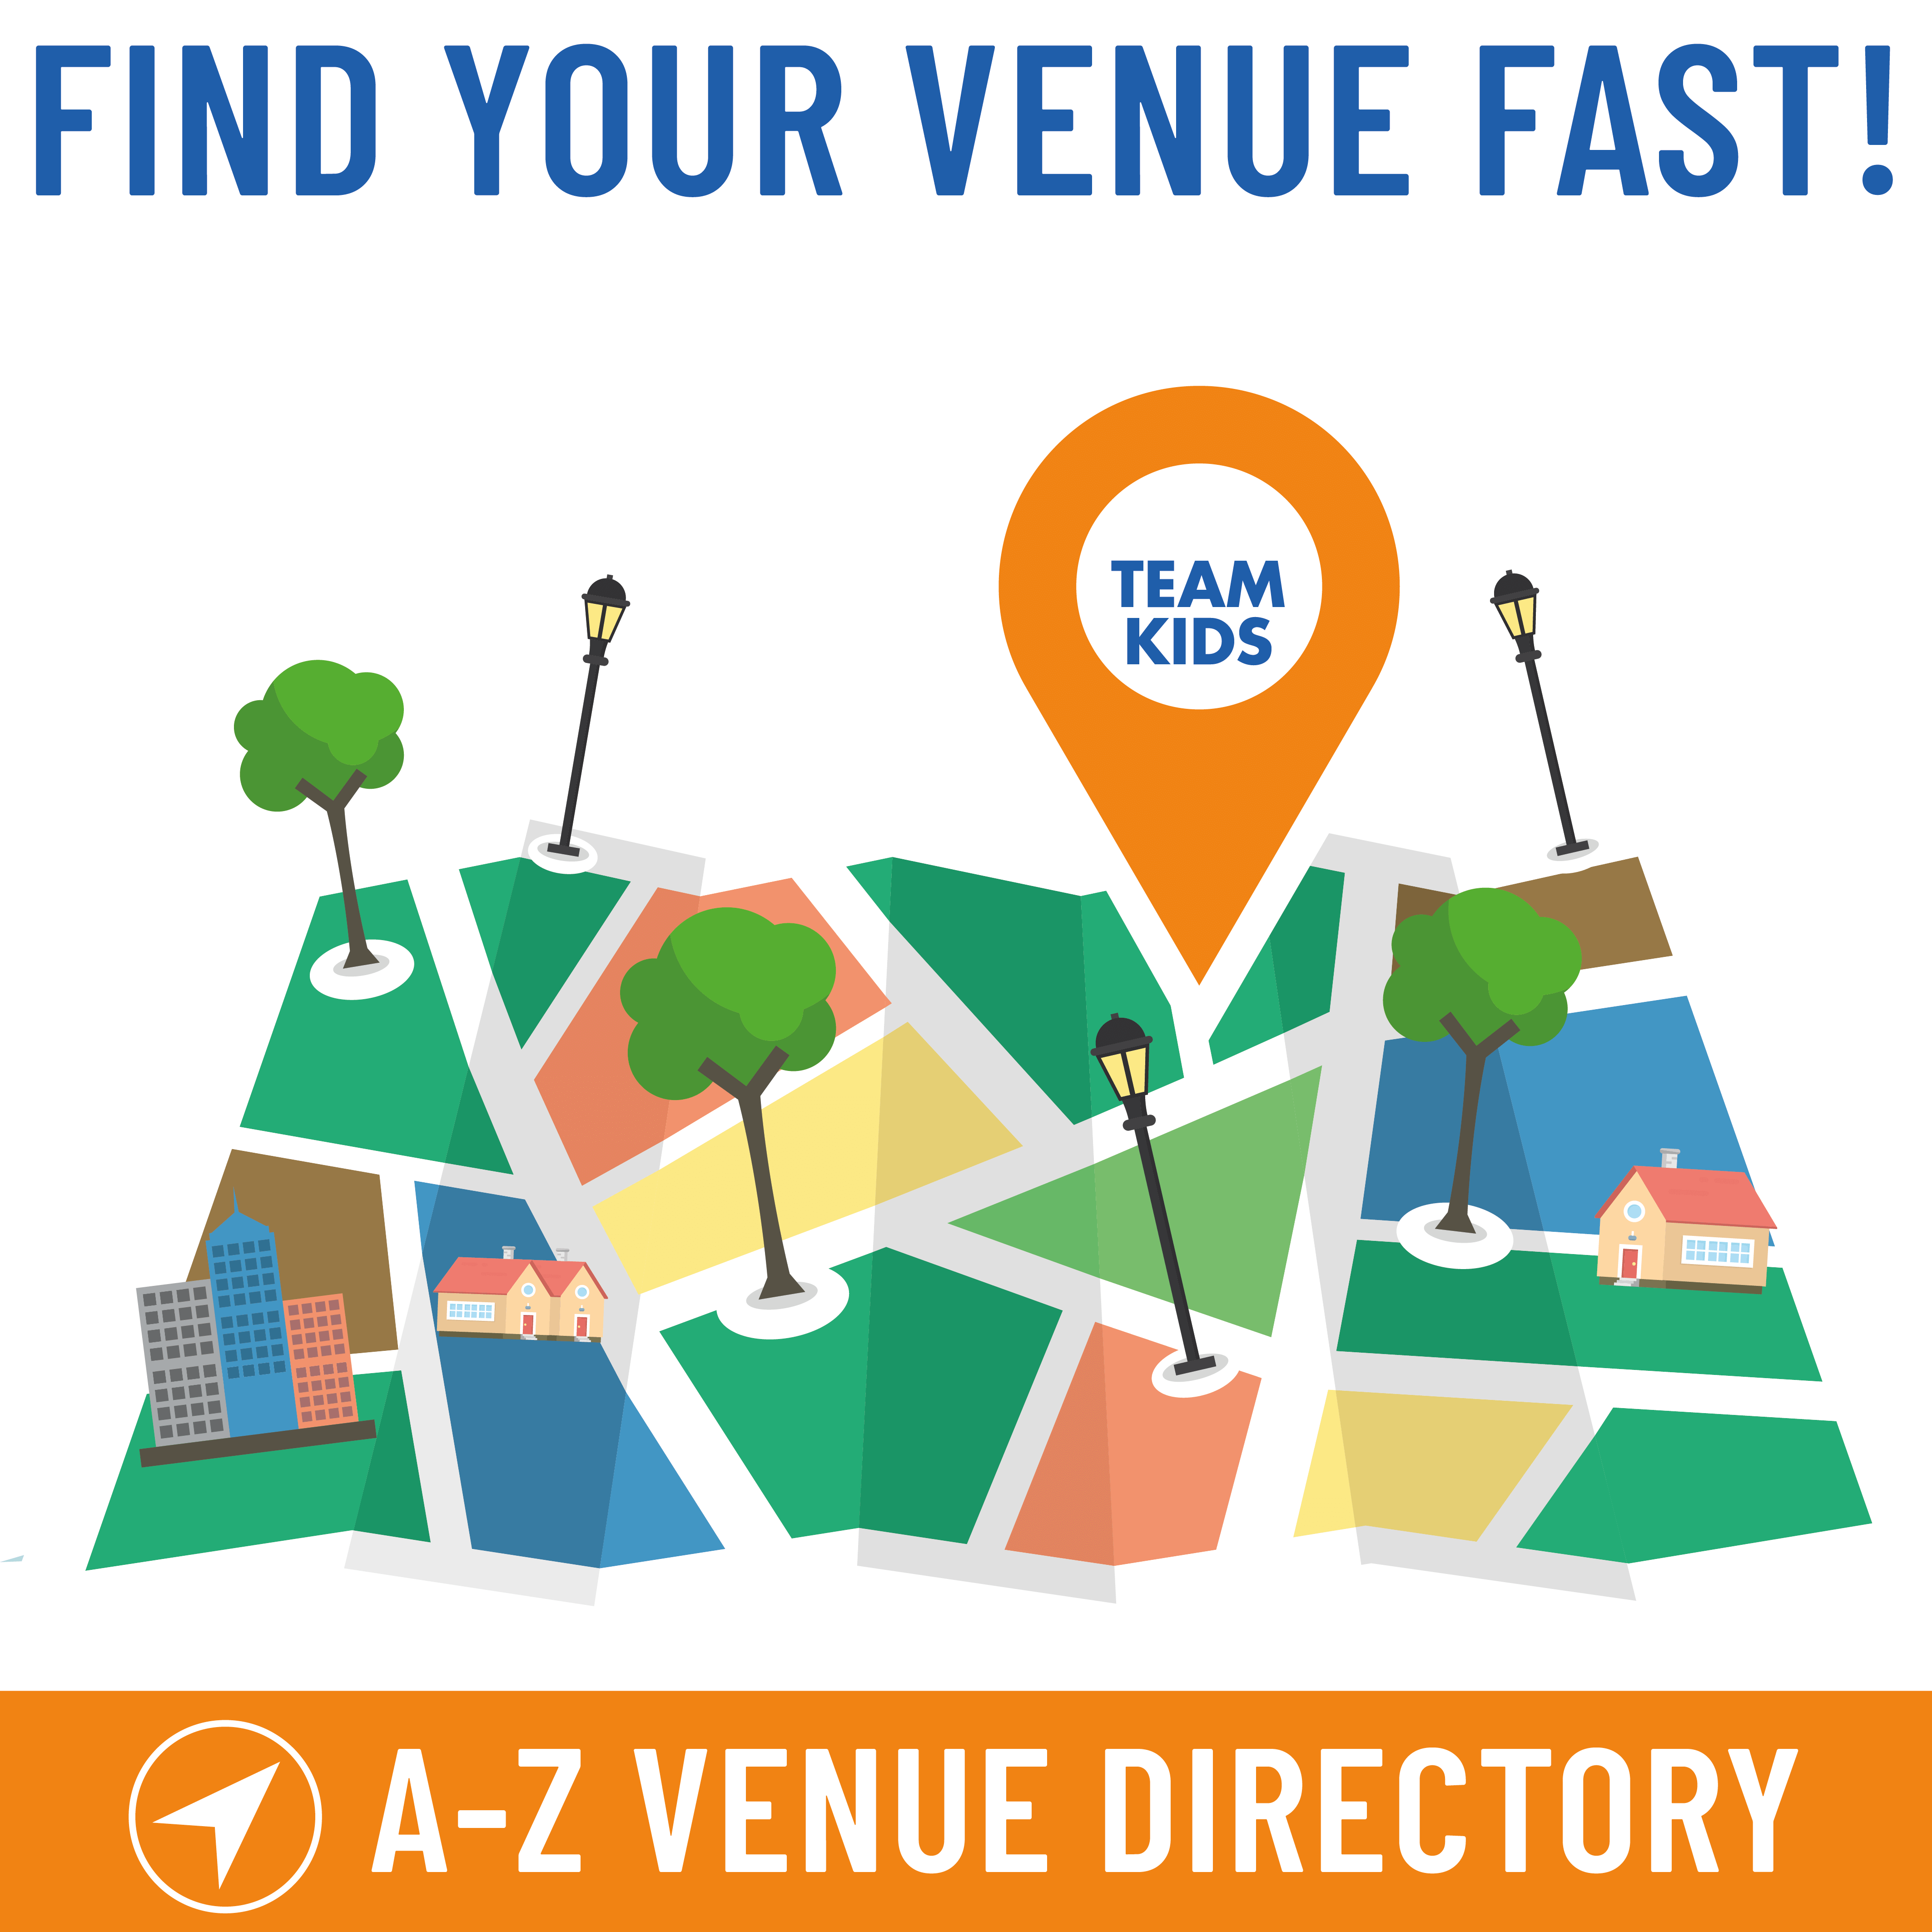 Find Your Venue Fast!